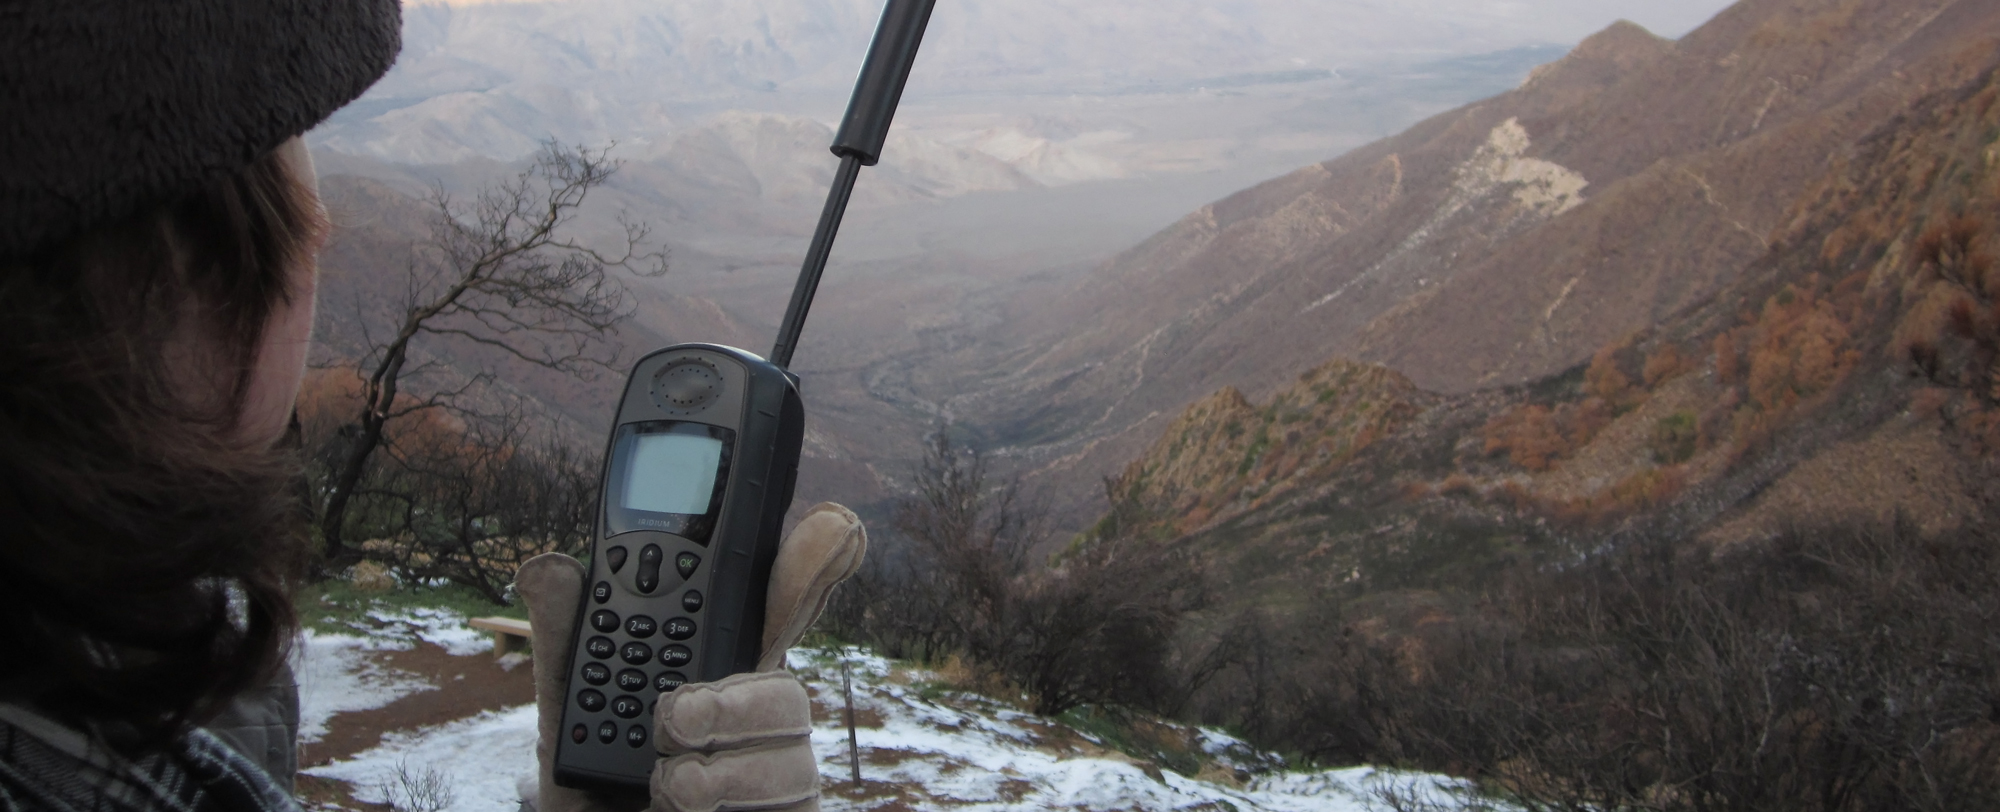 iridium-9505a-satellite-phone-used-in-remote-location-1.jpg